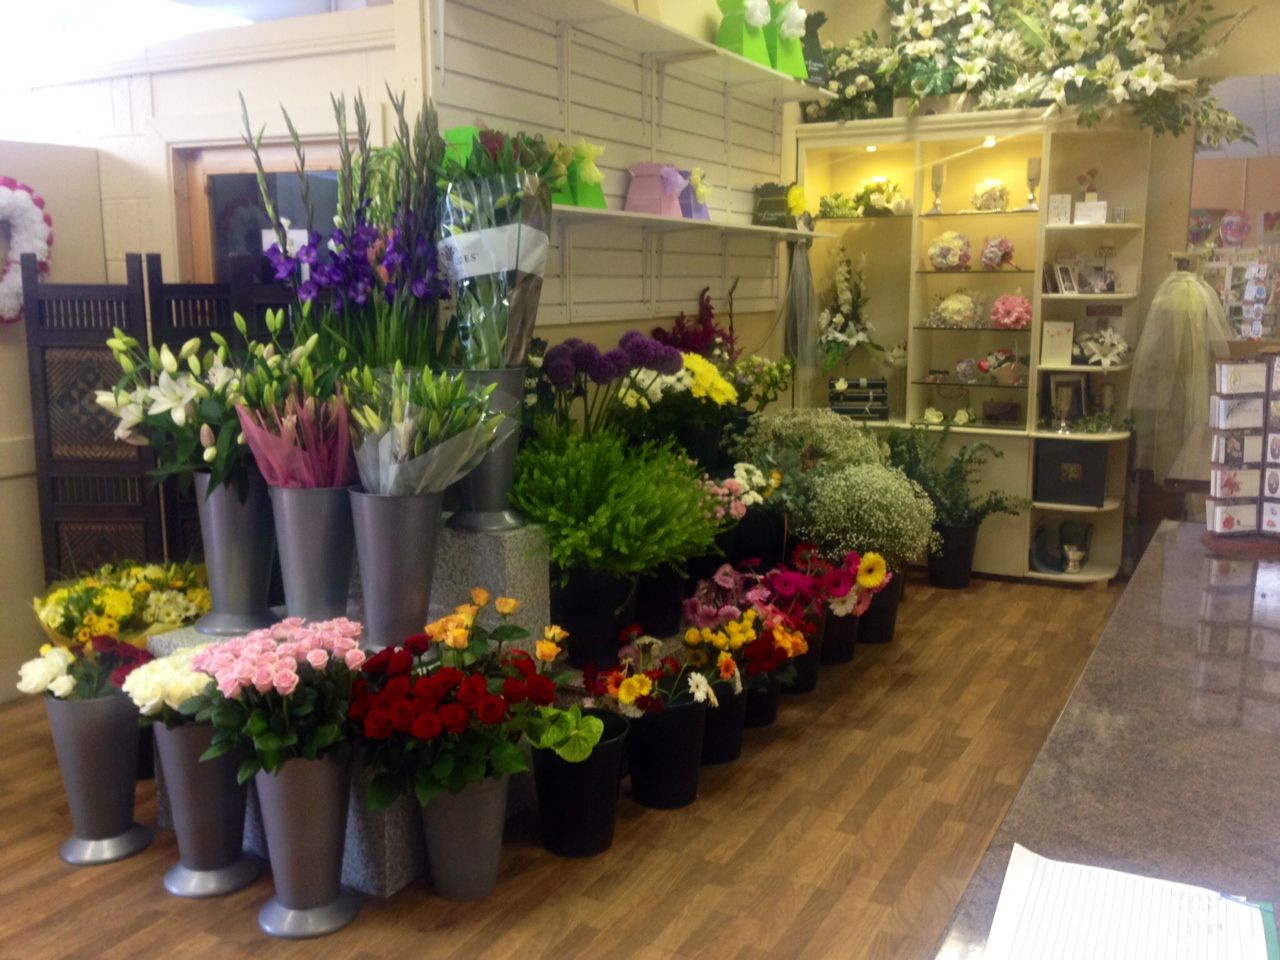 Flower shop florist shop flowers flower display unforgettable unforgettable florist cork send beautiful flowers made by our expert florists for same day flower delivery in cork izmirmasajfo Gallery